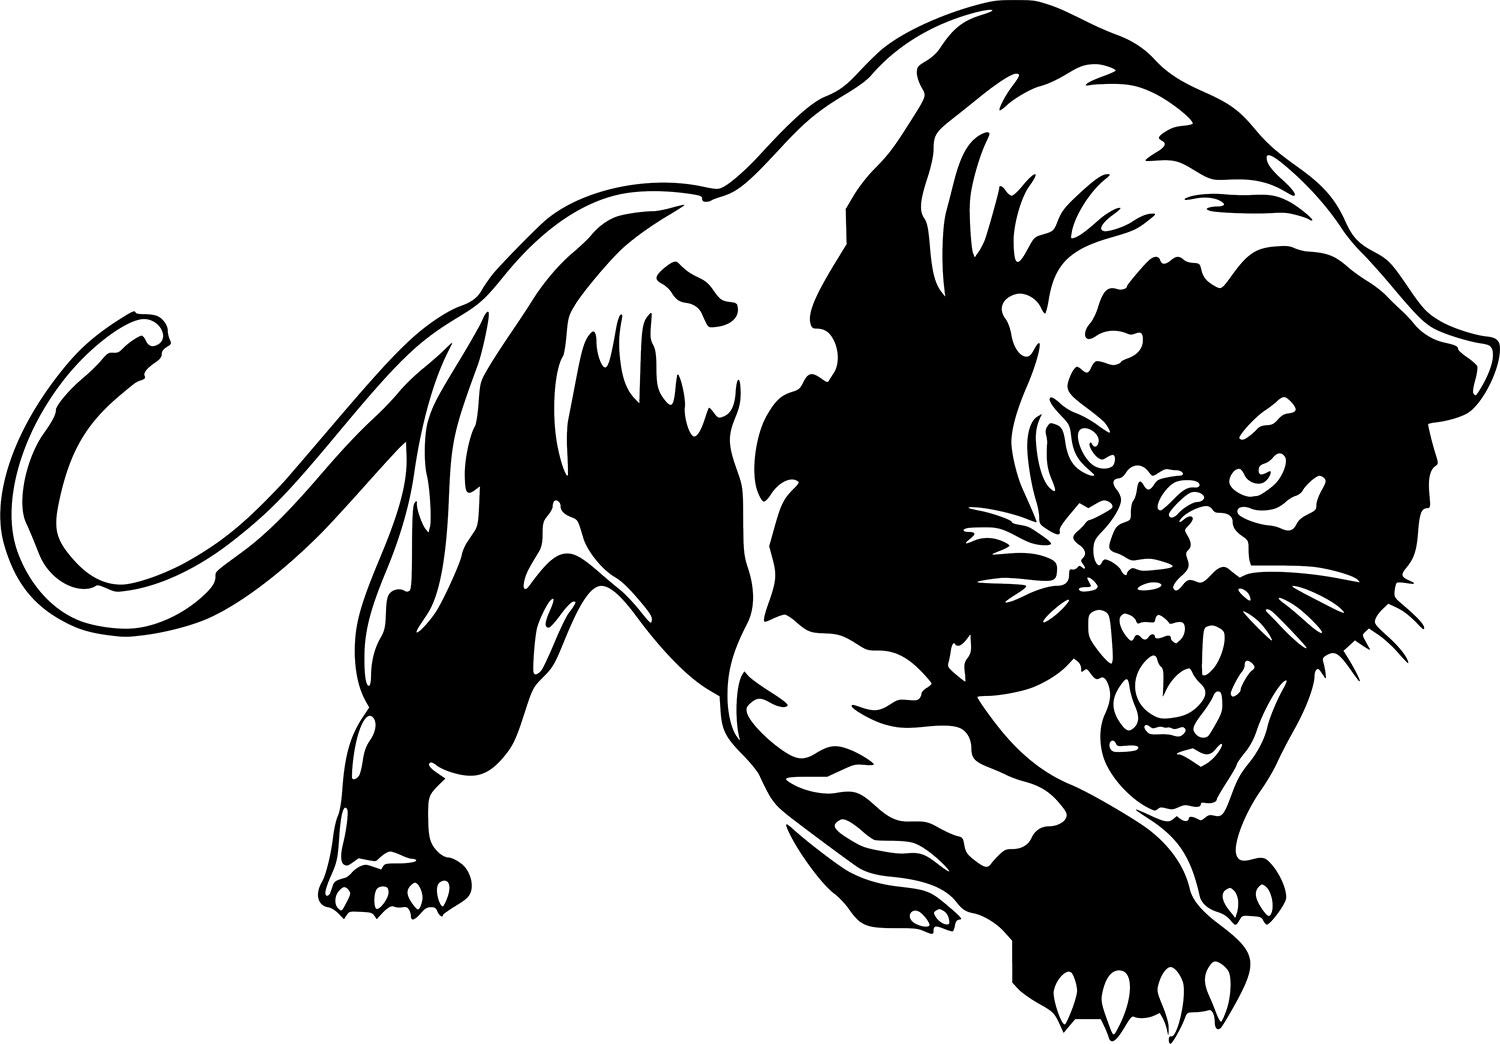 Details about Black Panther Wild Cat Wall Car Truck Window.